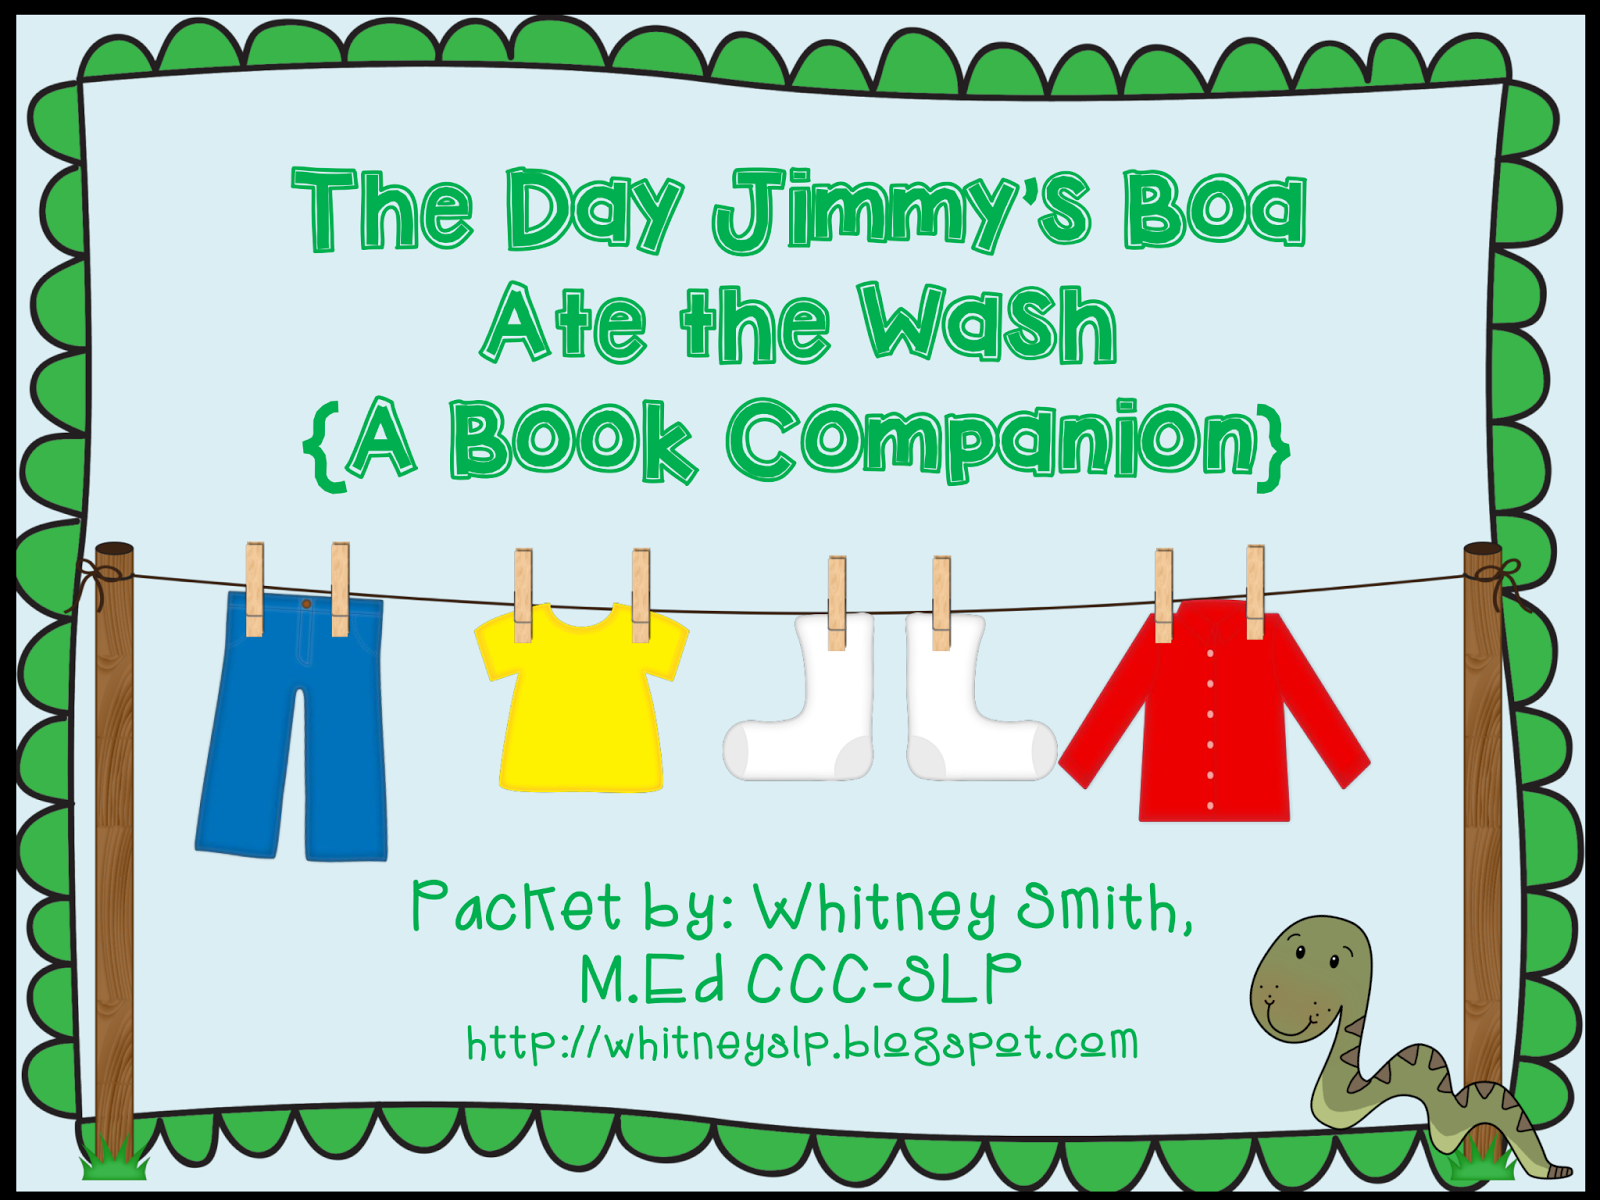 http://www.teacherspayteachers.com/Product/The-Day-Jimmys-Boa-Ate-the-Wash-Book-Companion-1201880